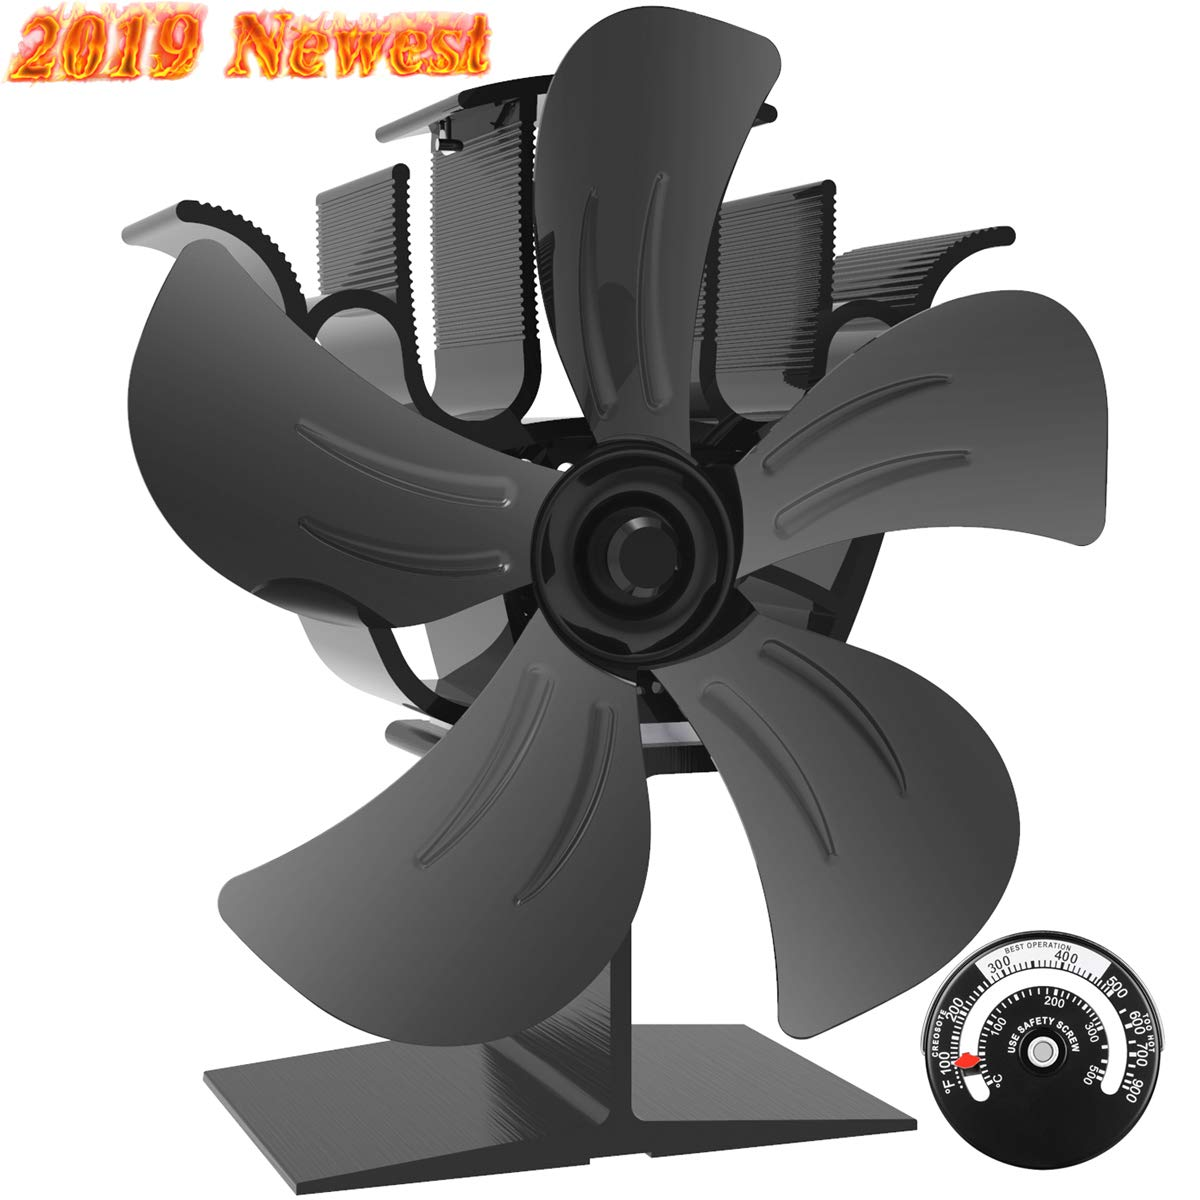 Sonyabecca 5 Blade Stove Fan Wood Stove Fans Fireplace Fan Heat Powered with Magnetic Thermometer Aluminium Eco-Friendly for Wood Log Burner Fireplace by Sonyabecca